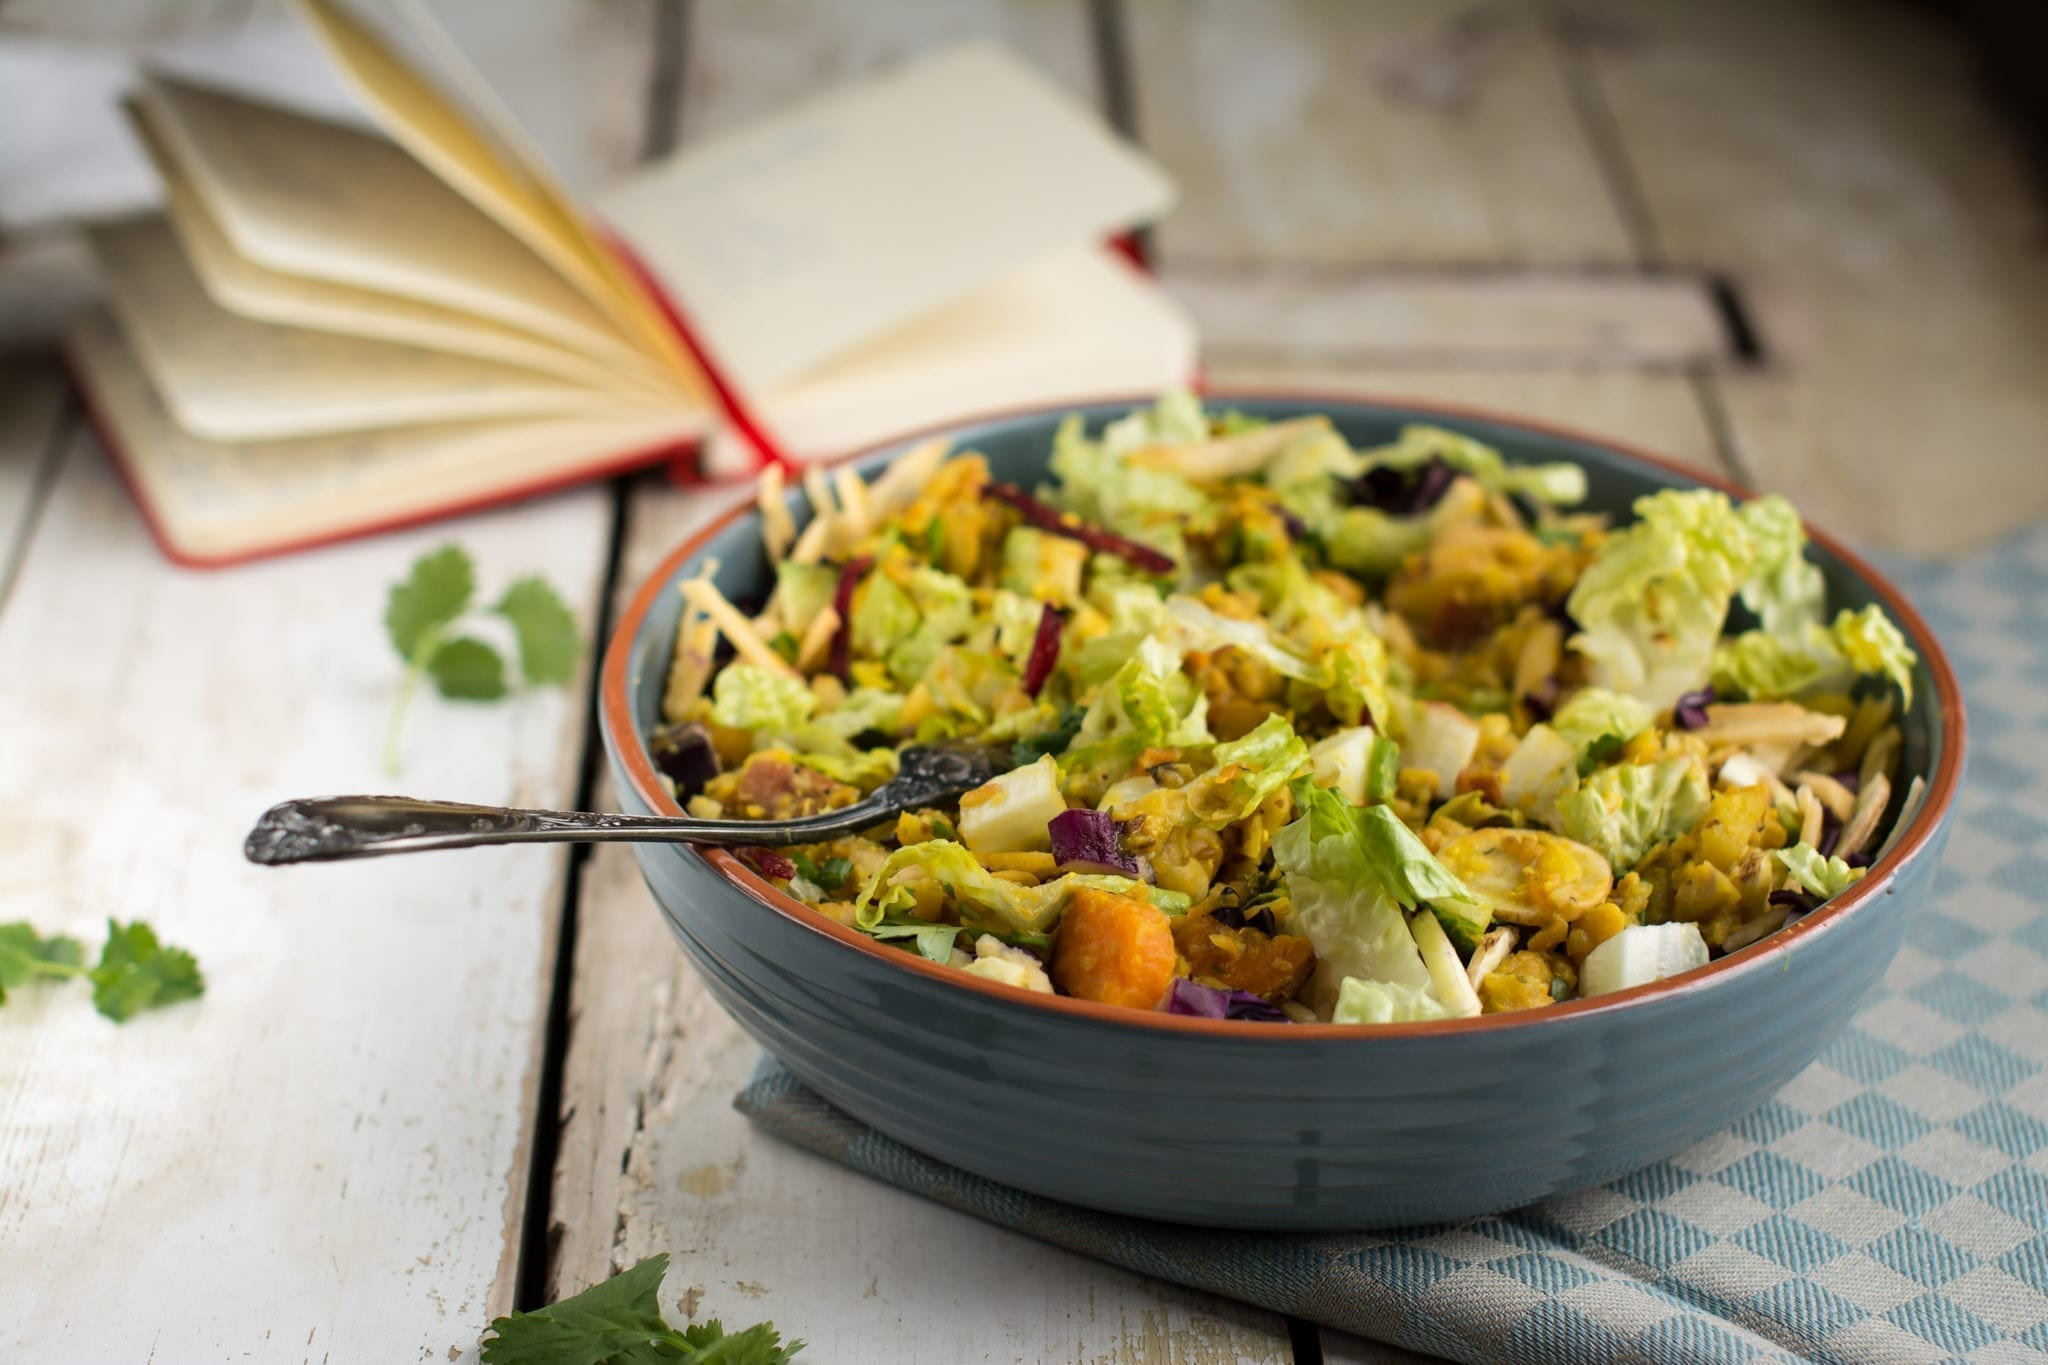 Salad with Chickpea Dhal, candida diet recipes